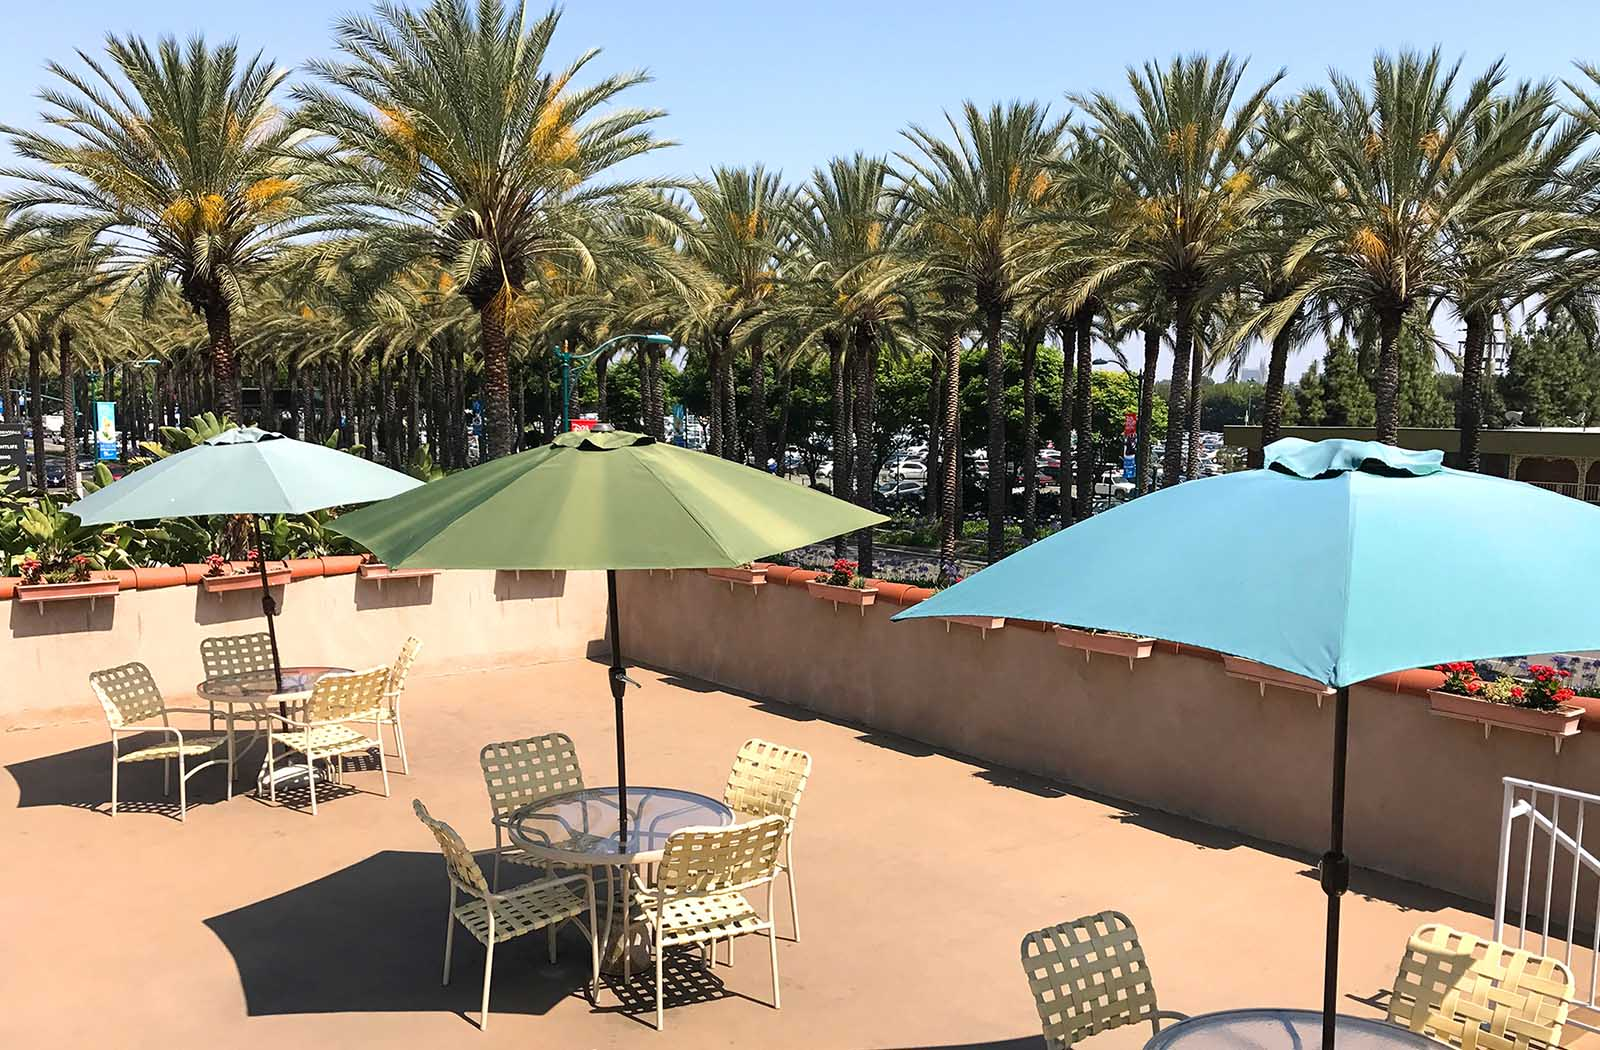 Kings-Inn-Anaheim-formerly-Super-8-Anaheim_0001_KingsInn-Anaheim-Patio-print.tif